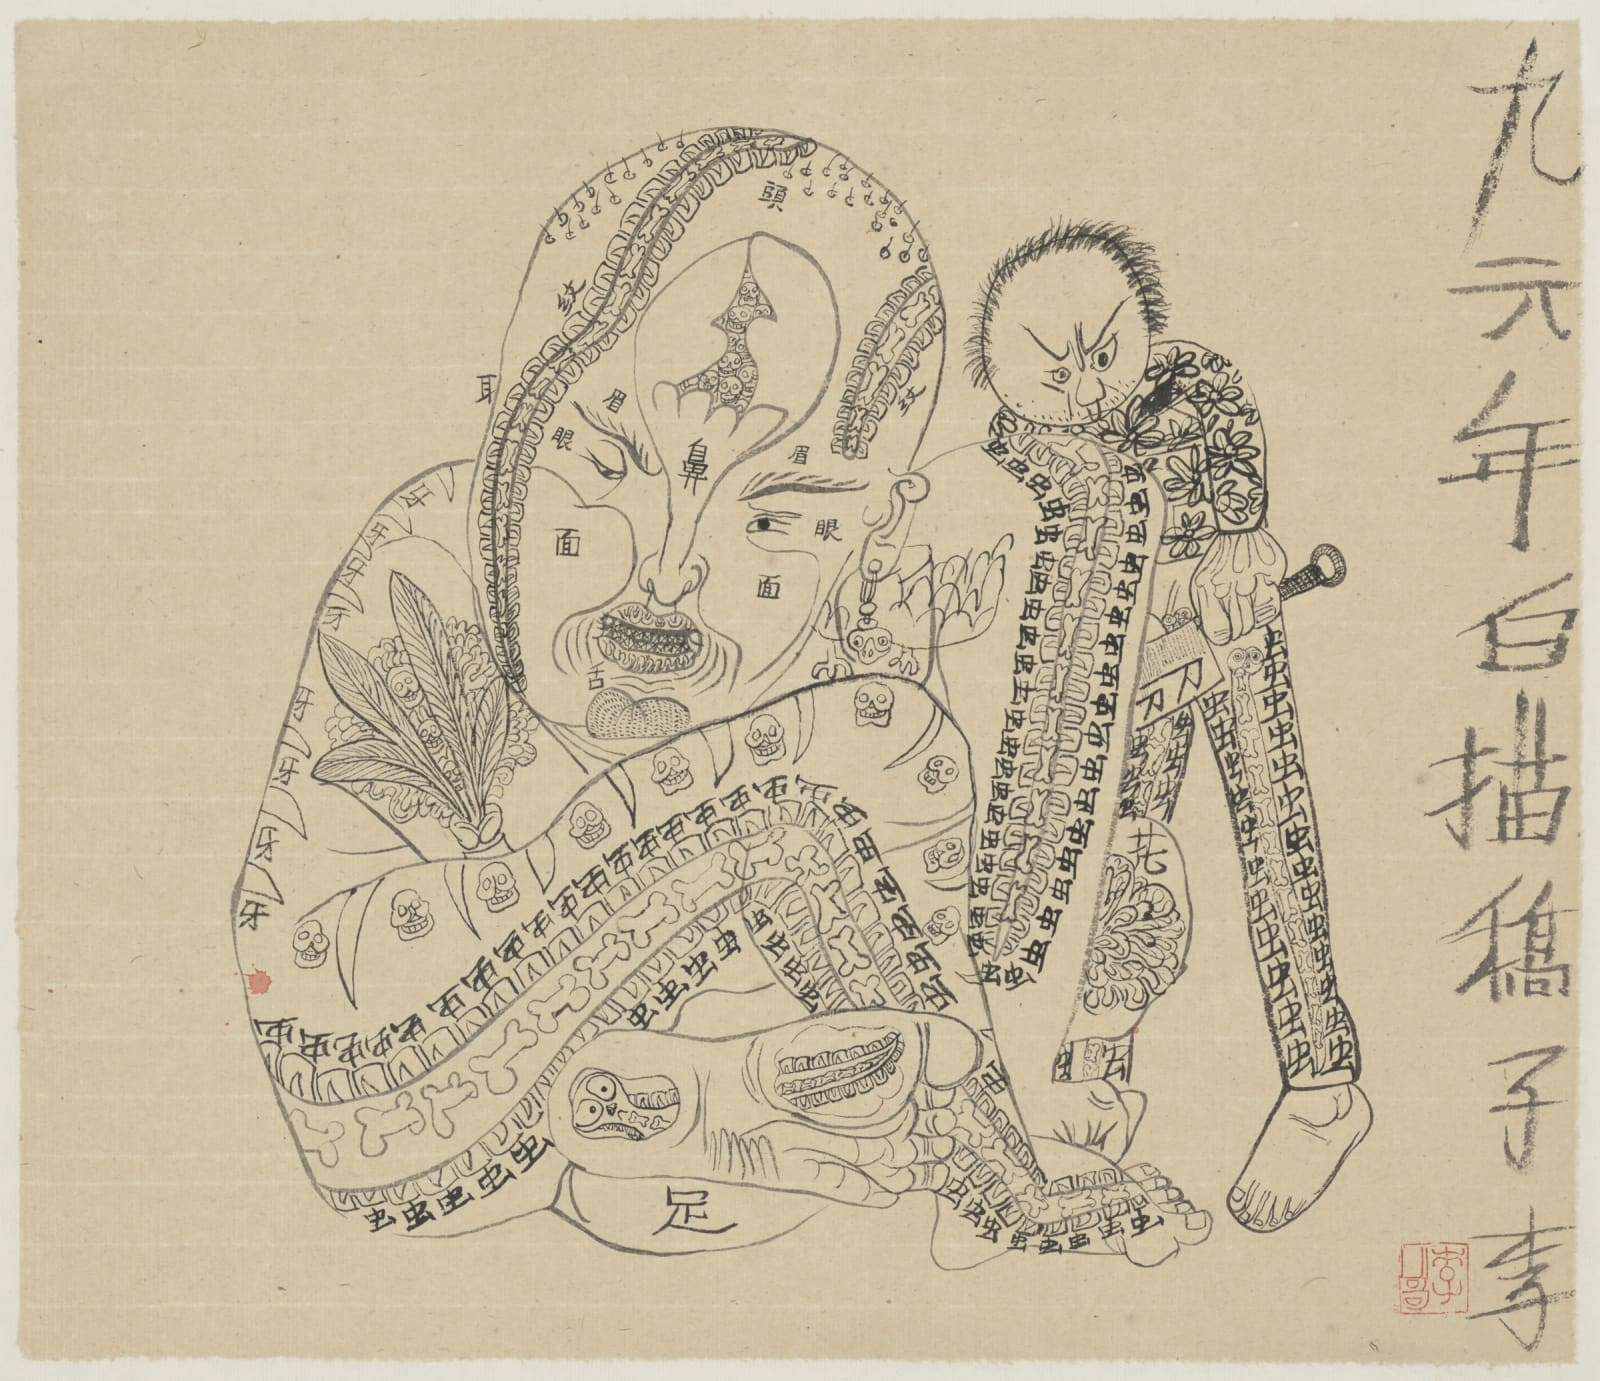 Li Jin 李津, Line Drawing: Knife 小哥线描:刀, 1996